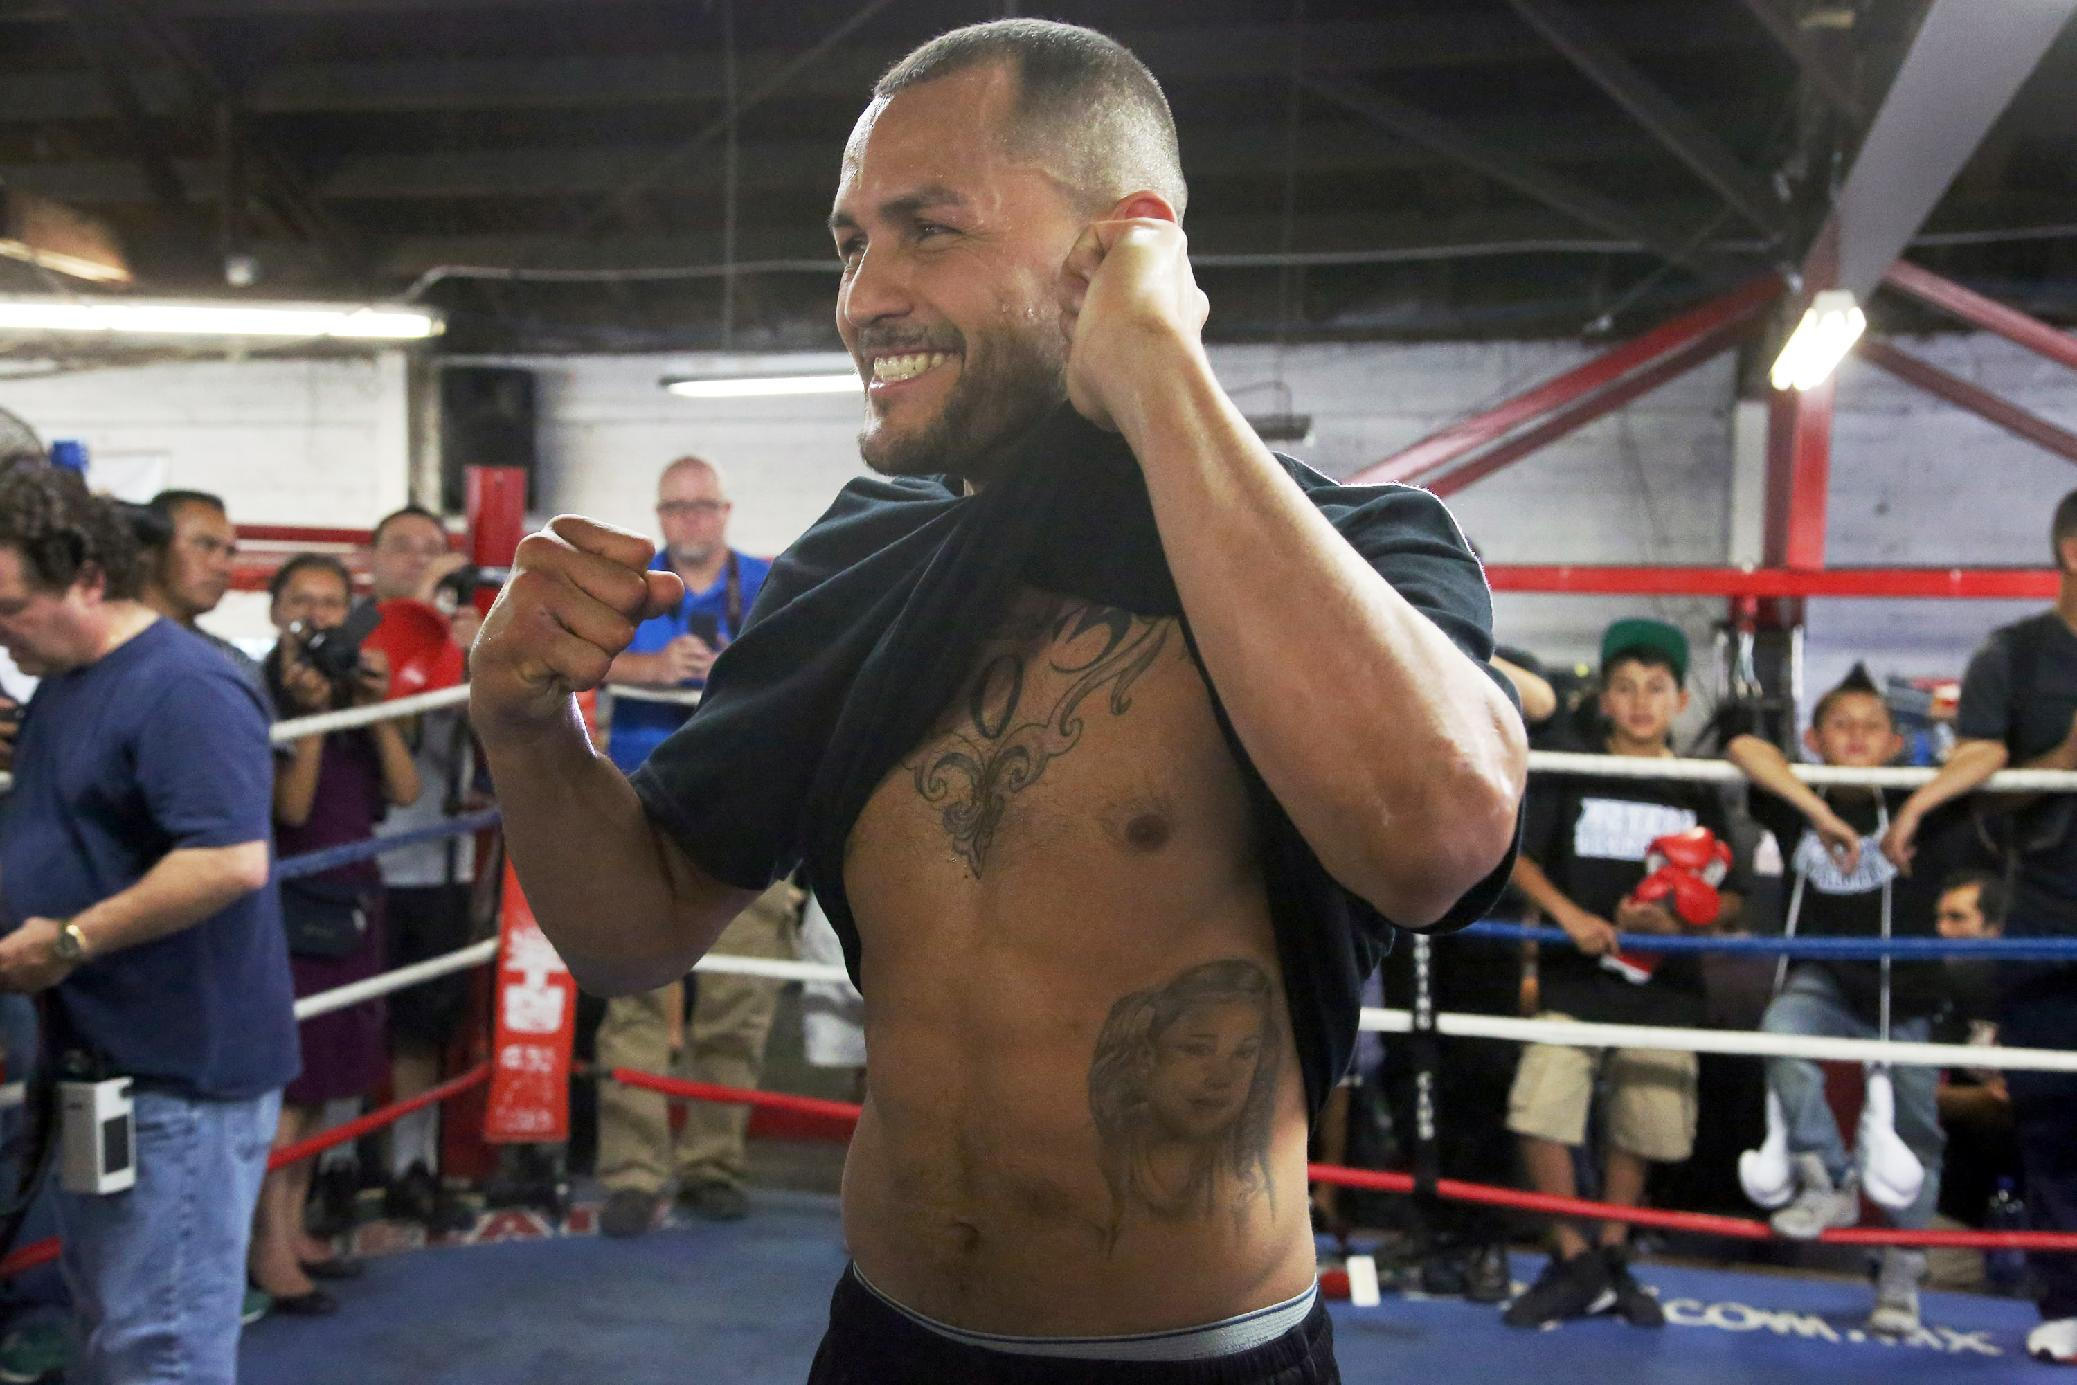 Mike Alvarado poses in the ring during a workout in front of the media in Bell, Calif., Wednesday, May 14, 2014. He and Juan Manuel Marquez, of Mexico, are preparing for their WBO welterweight elimination bout at the Forum in Inglewood, Calif., Saturday. The winner will become the mandatory challenger to WBO welterweight champion Manny Pacquiao